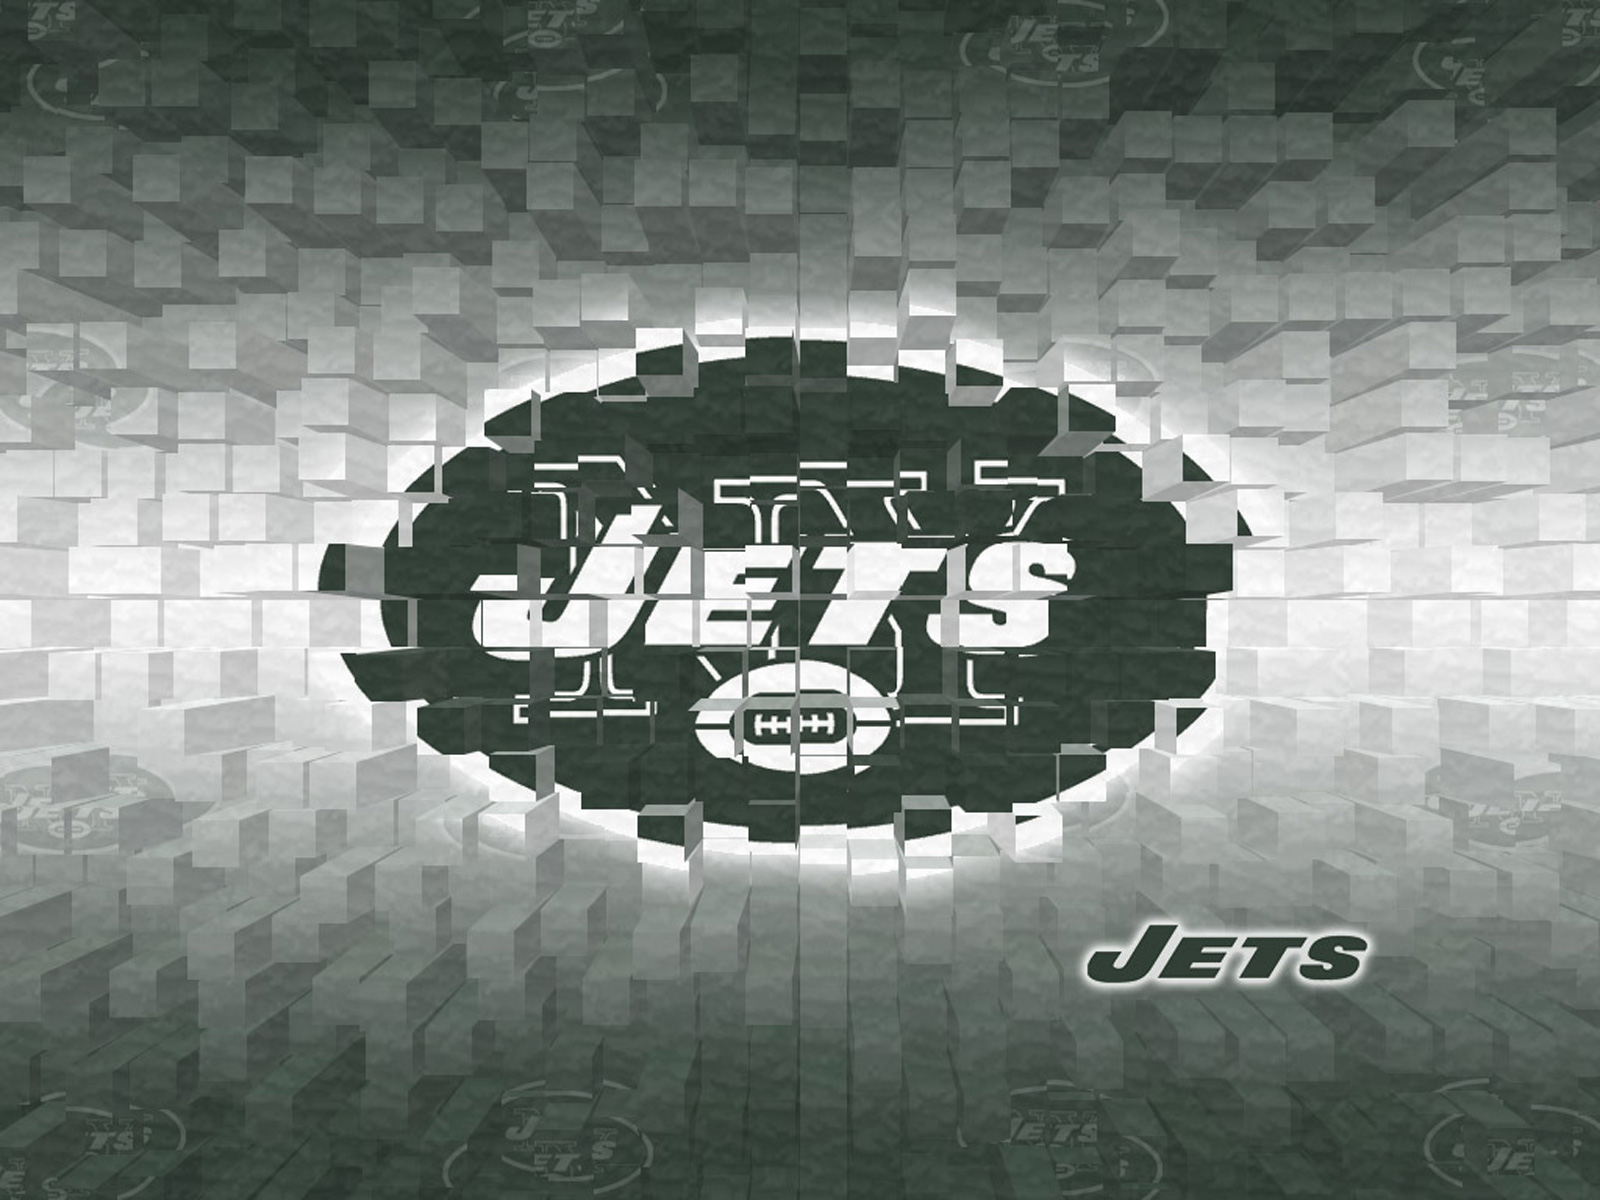 http://4.bp.blogspot.com/_SPY5-z18DBU/TTAp_gC7QFI/AAAAAAAAAI8/_lVZNRhHKjw/s1600/new_york_jets_3d_wallpaper_1600x1200.jpeg